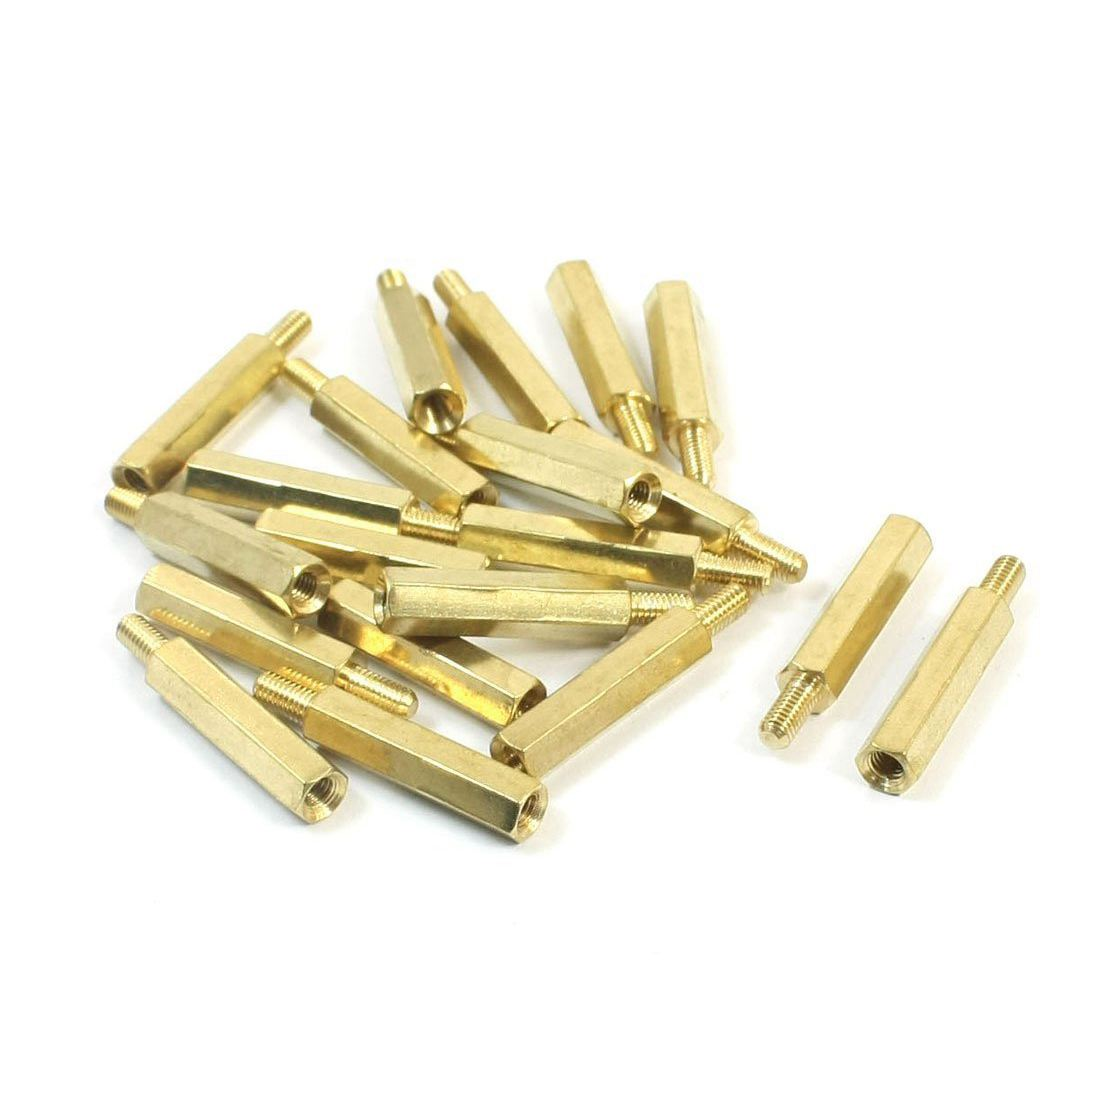 SHGO HOT-20 Pcs <font><b>M3</b></font> x <font><b>20mm</b></font> x 26mm Male to Female PCB Hexagon Nut <font><b>Standoff</b></font> Spacer image